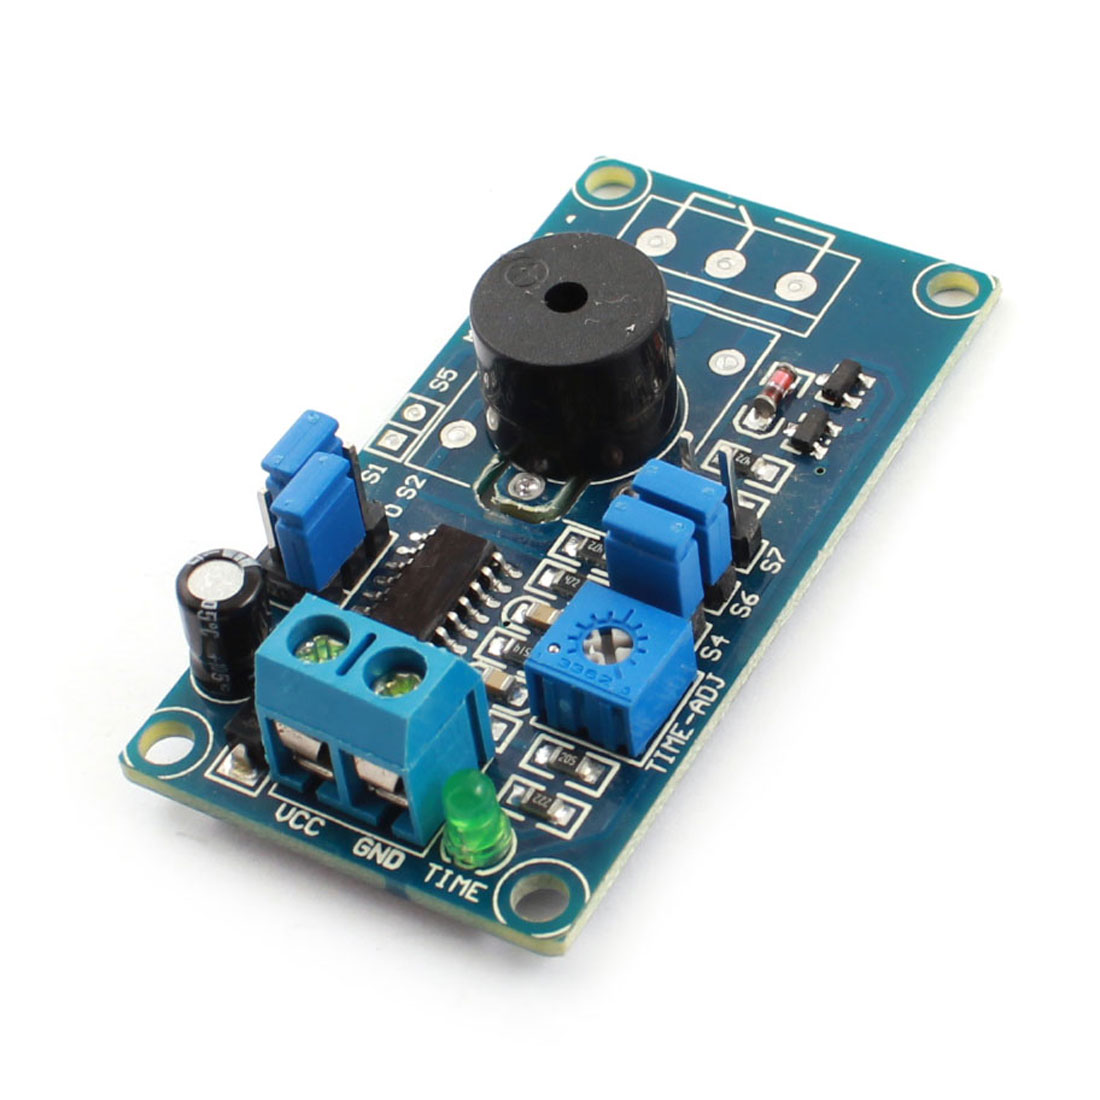 FC-32 DC12V 85dB Power On Buzzer Alarm Time Delay Module PCB Circuit Board